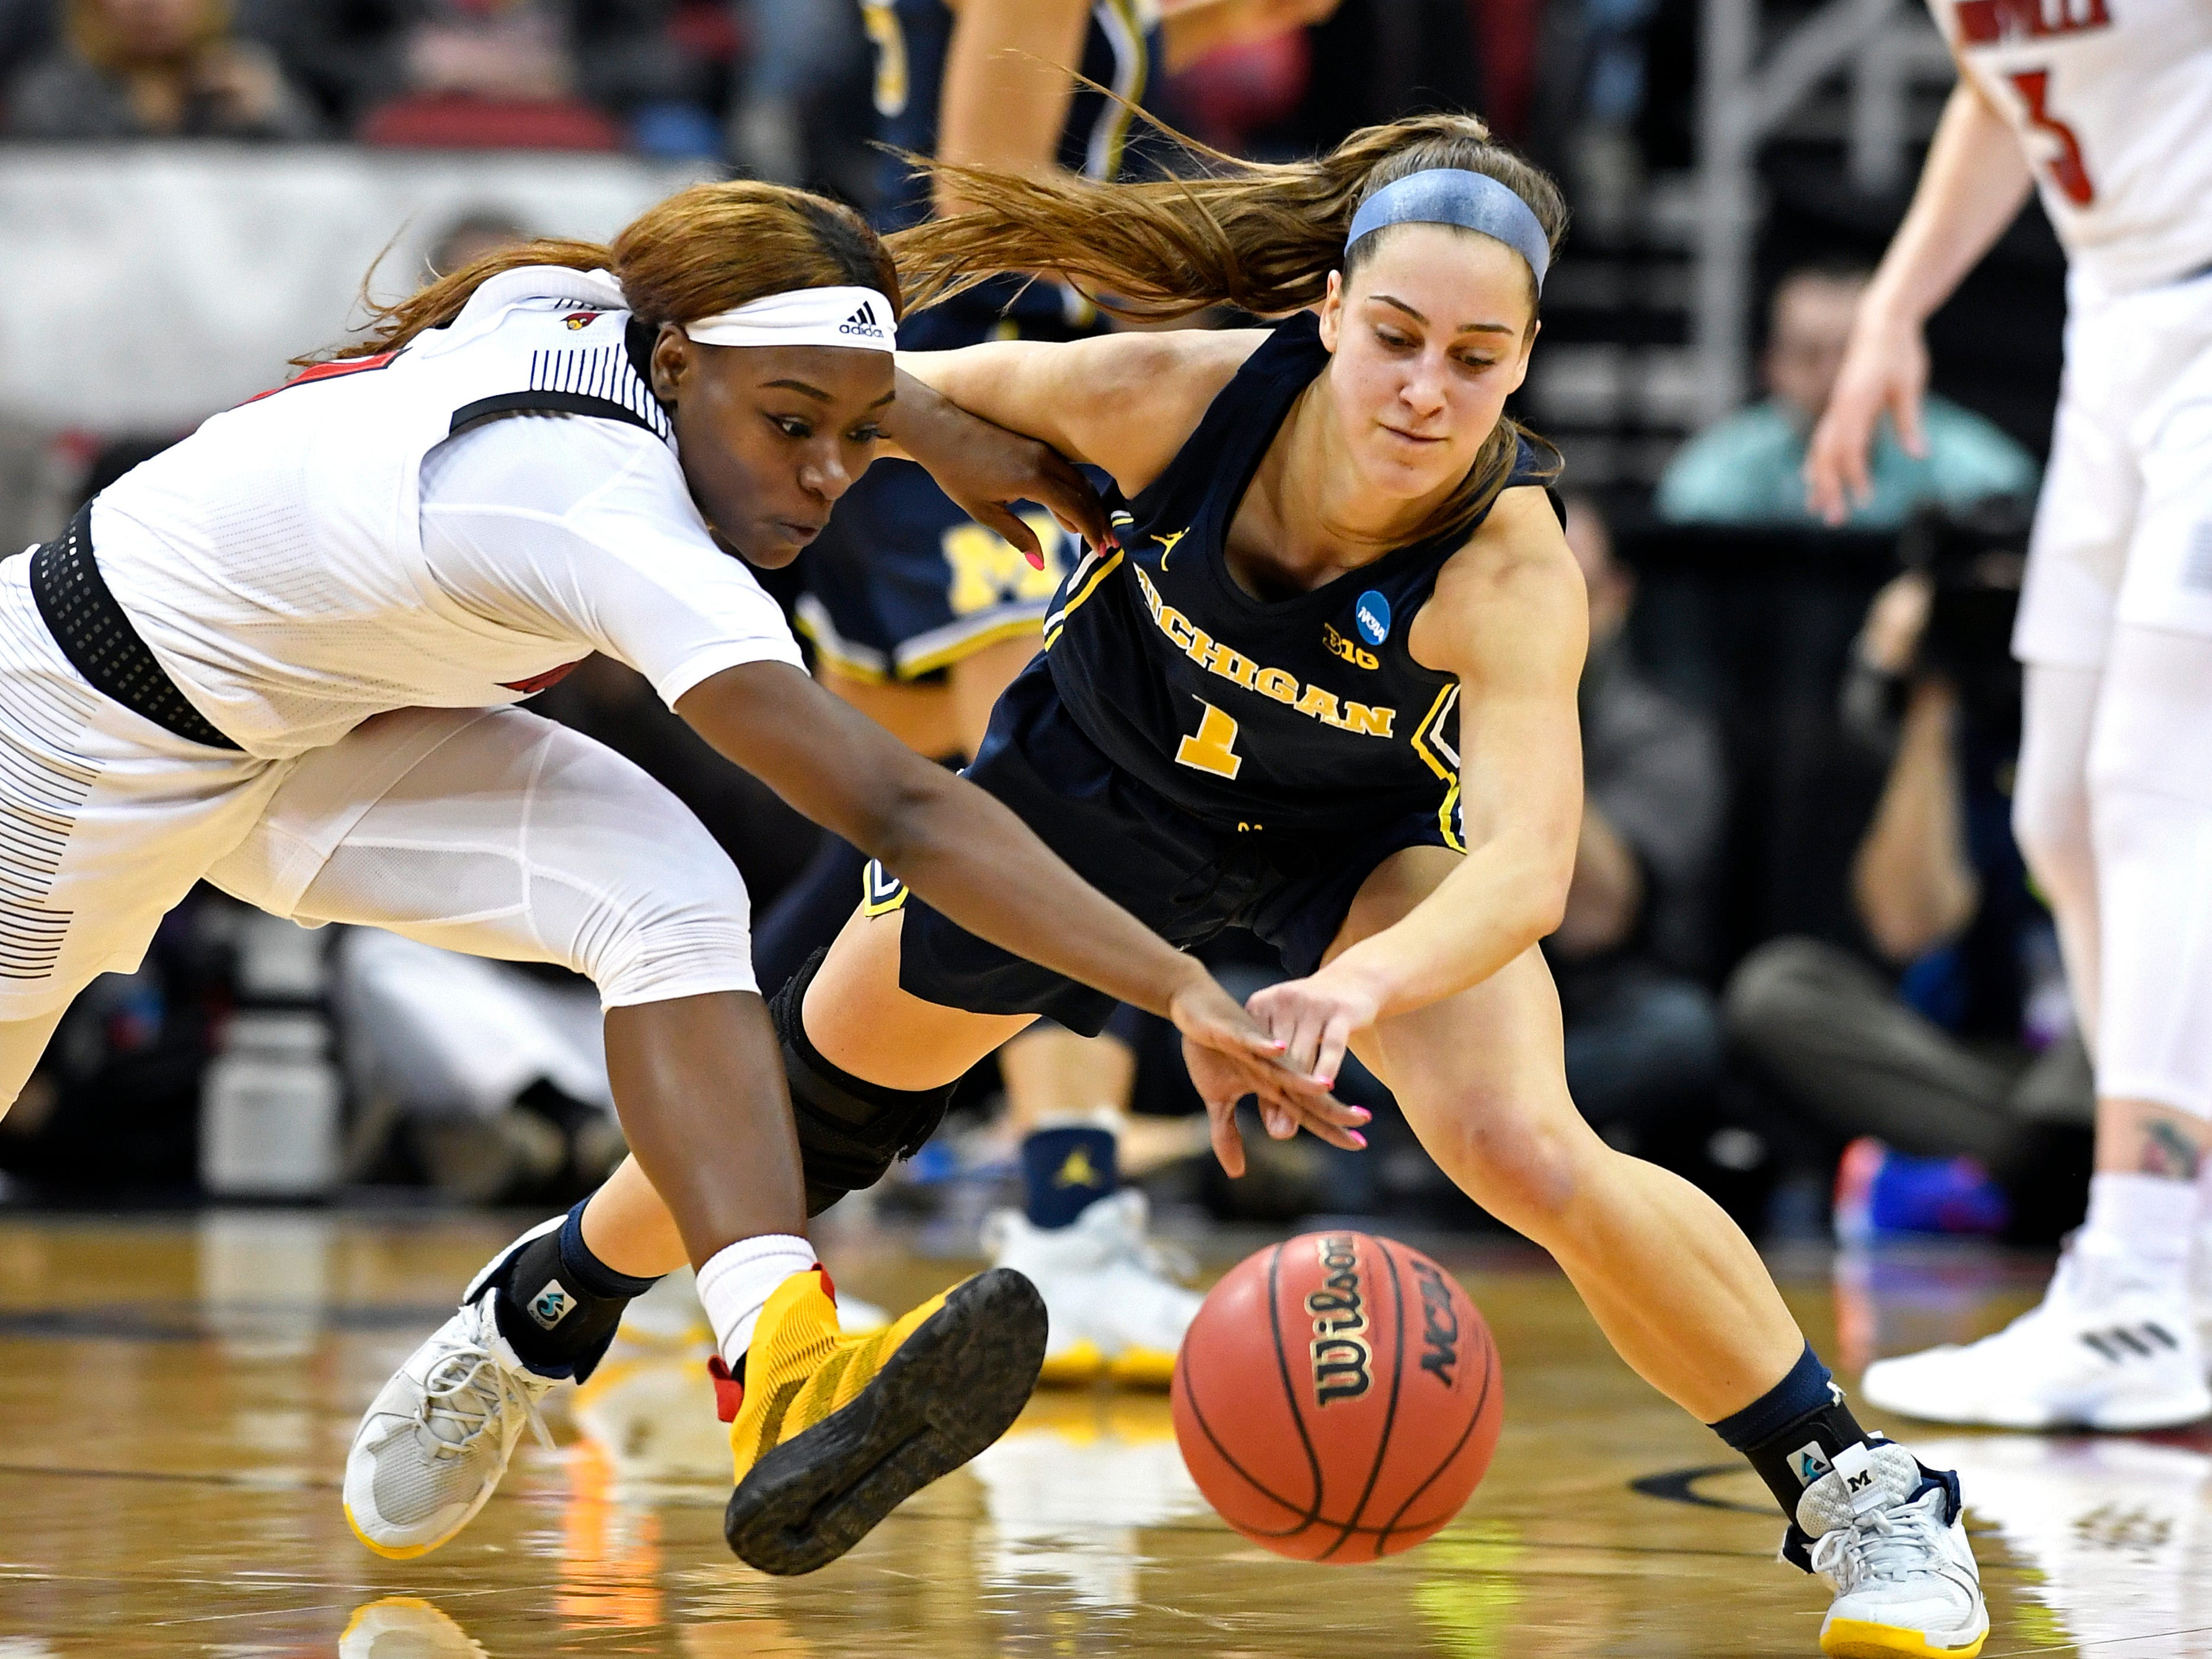 Louisville guard Dana Evans, left, battles Michigan guard Amy Dilk for the ball.